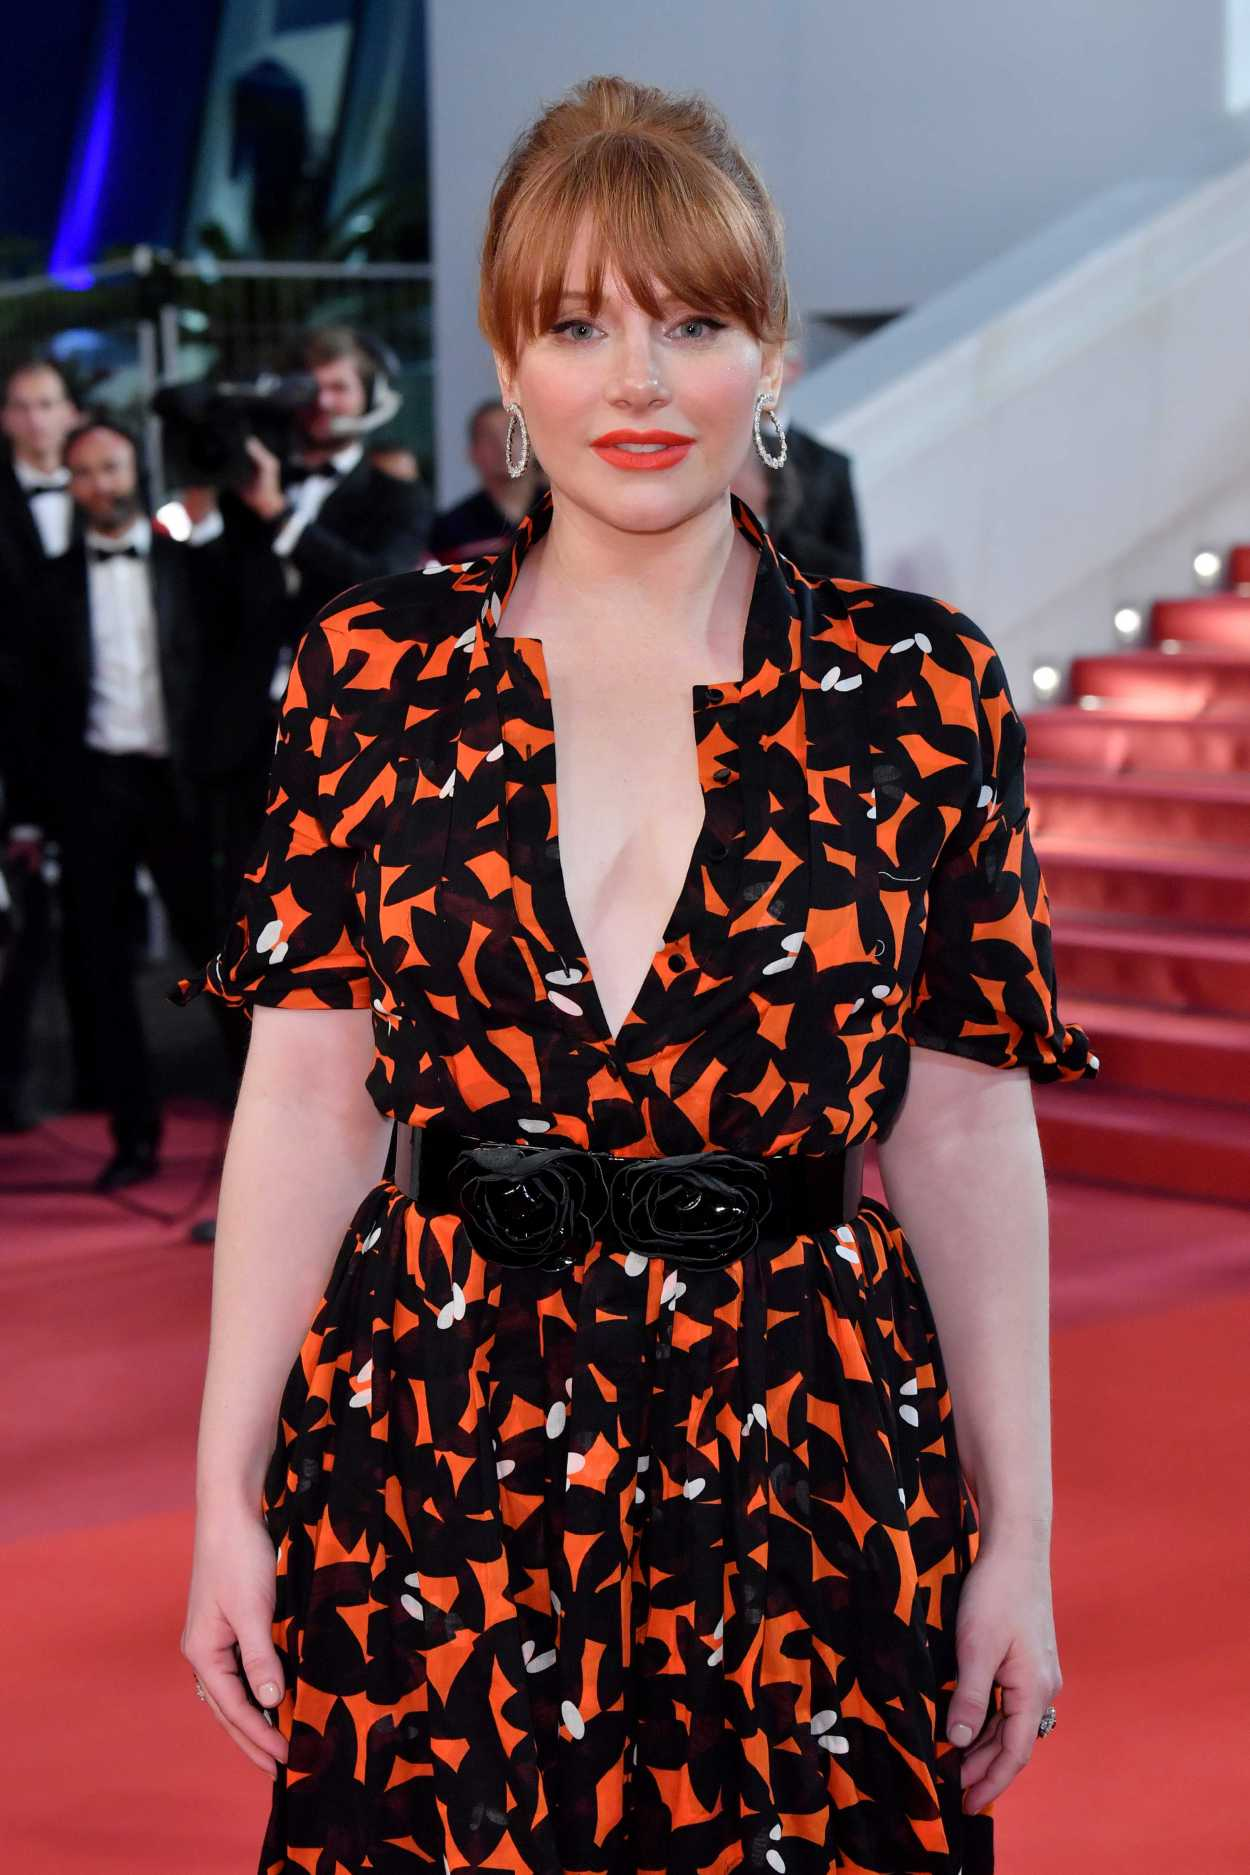 Bryce Dallas Howard Attends The Rocketman Premiere During